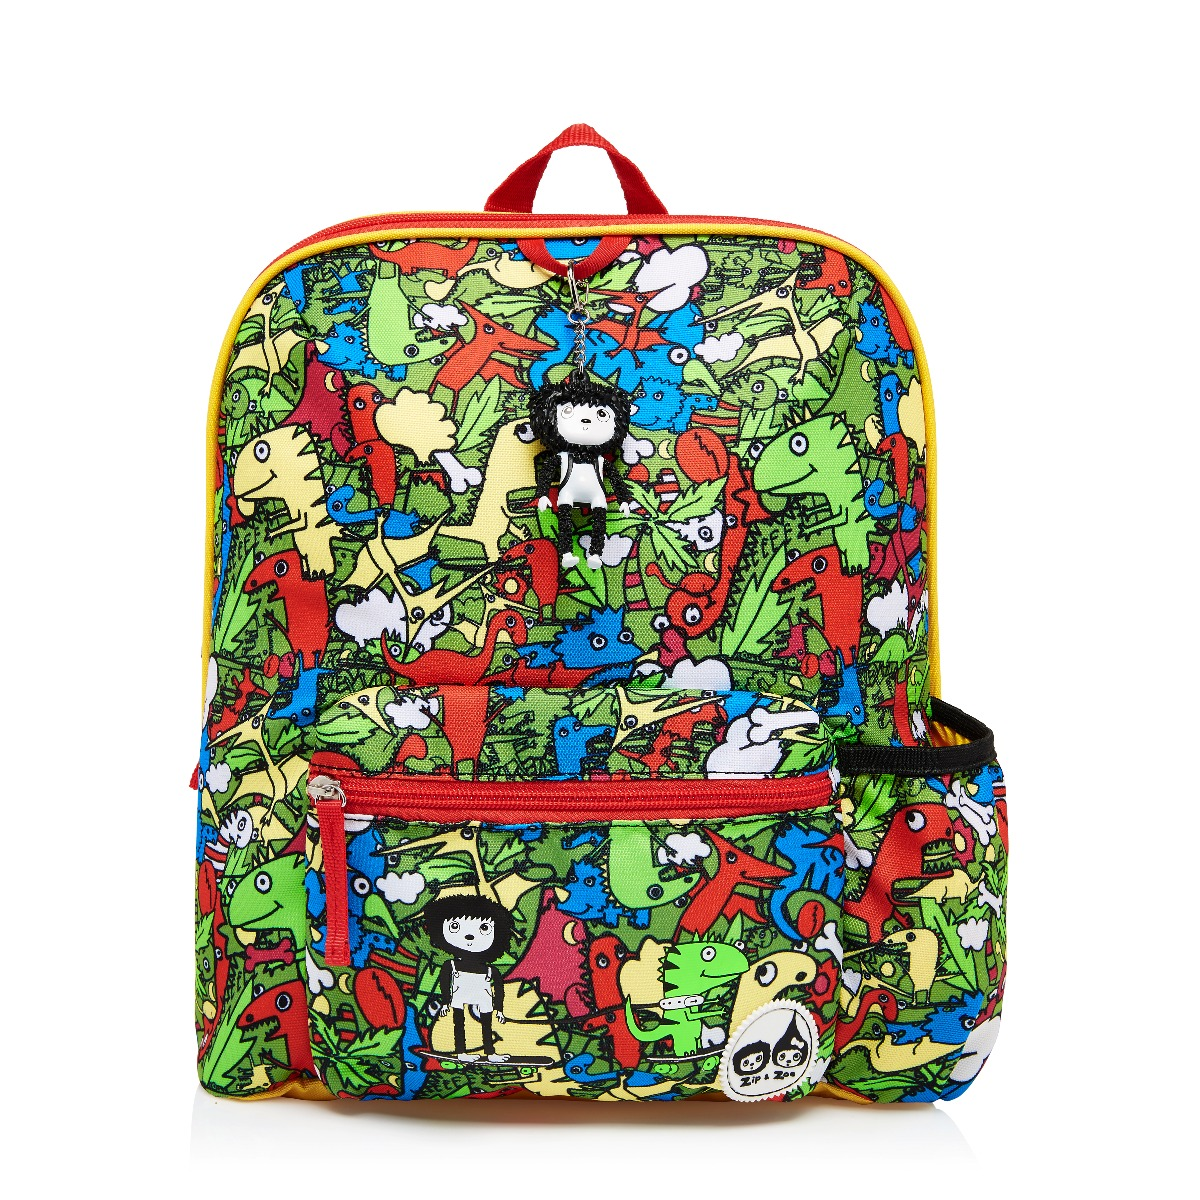 Zip and Zoe Midi Kid's Backpack (3-7Y) Dino Multi